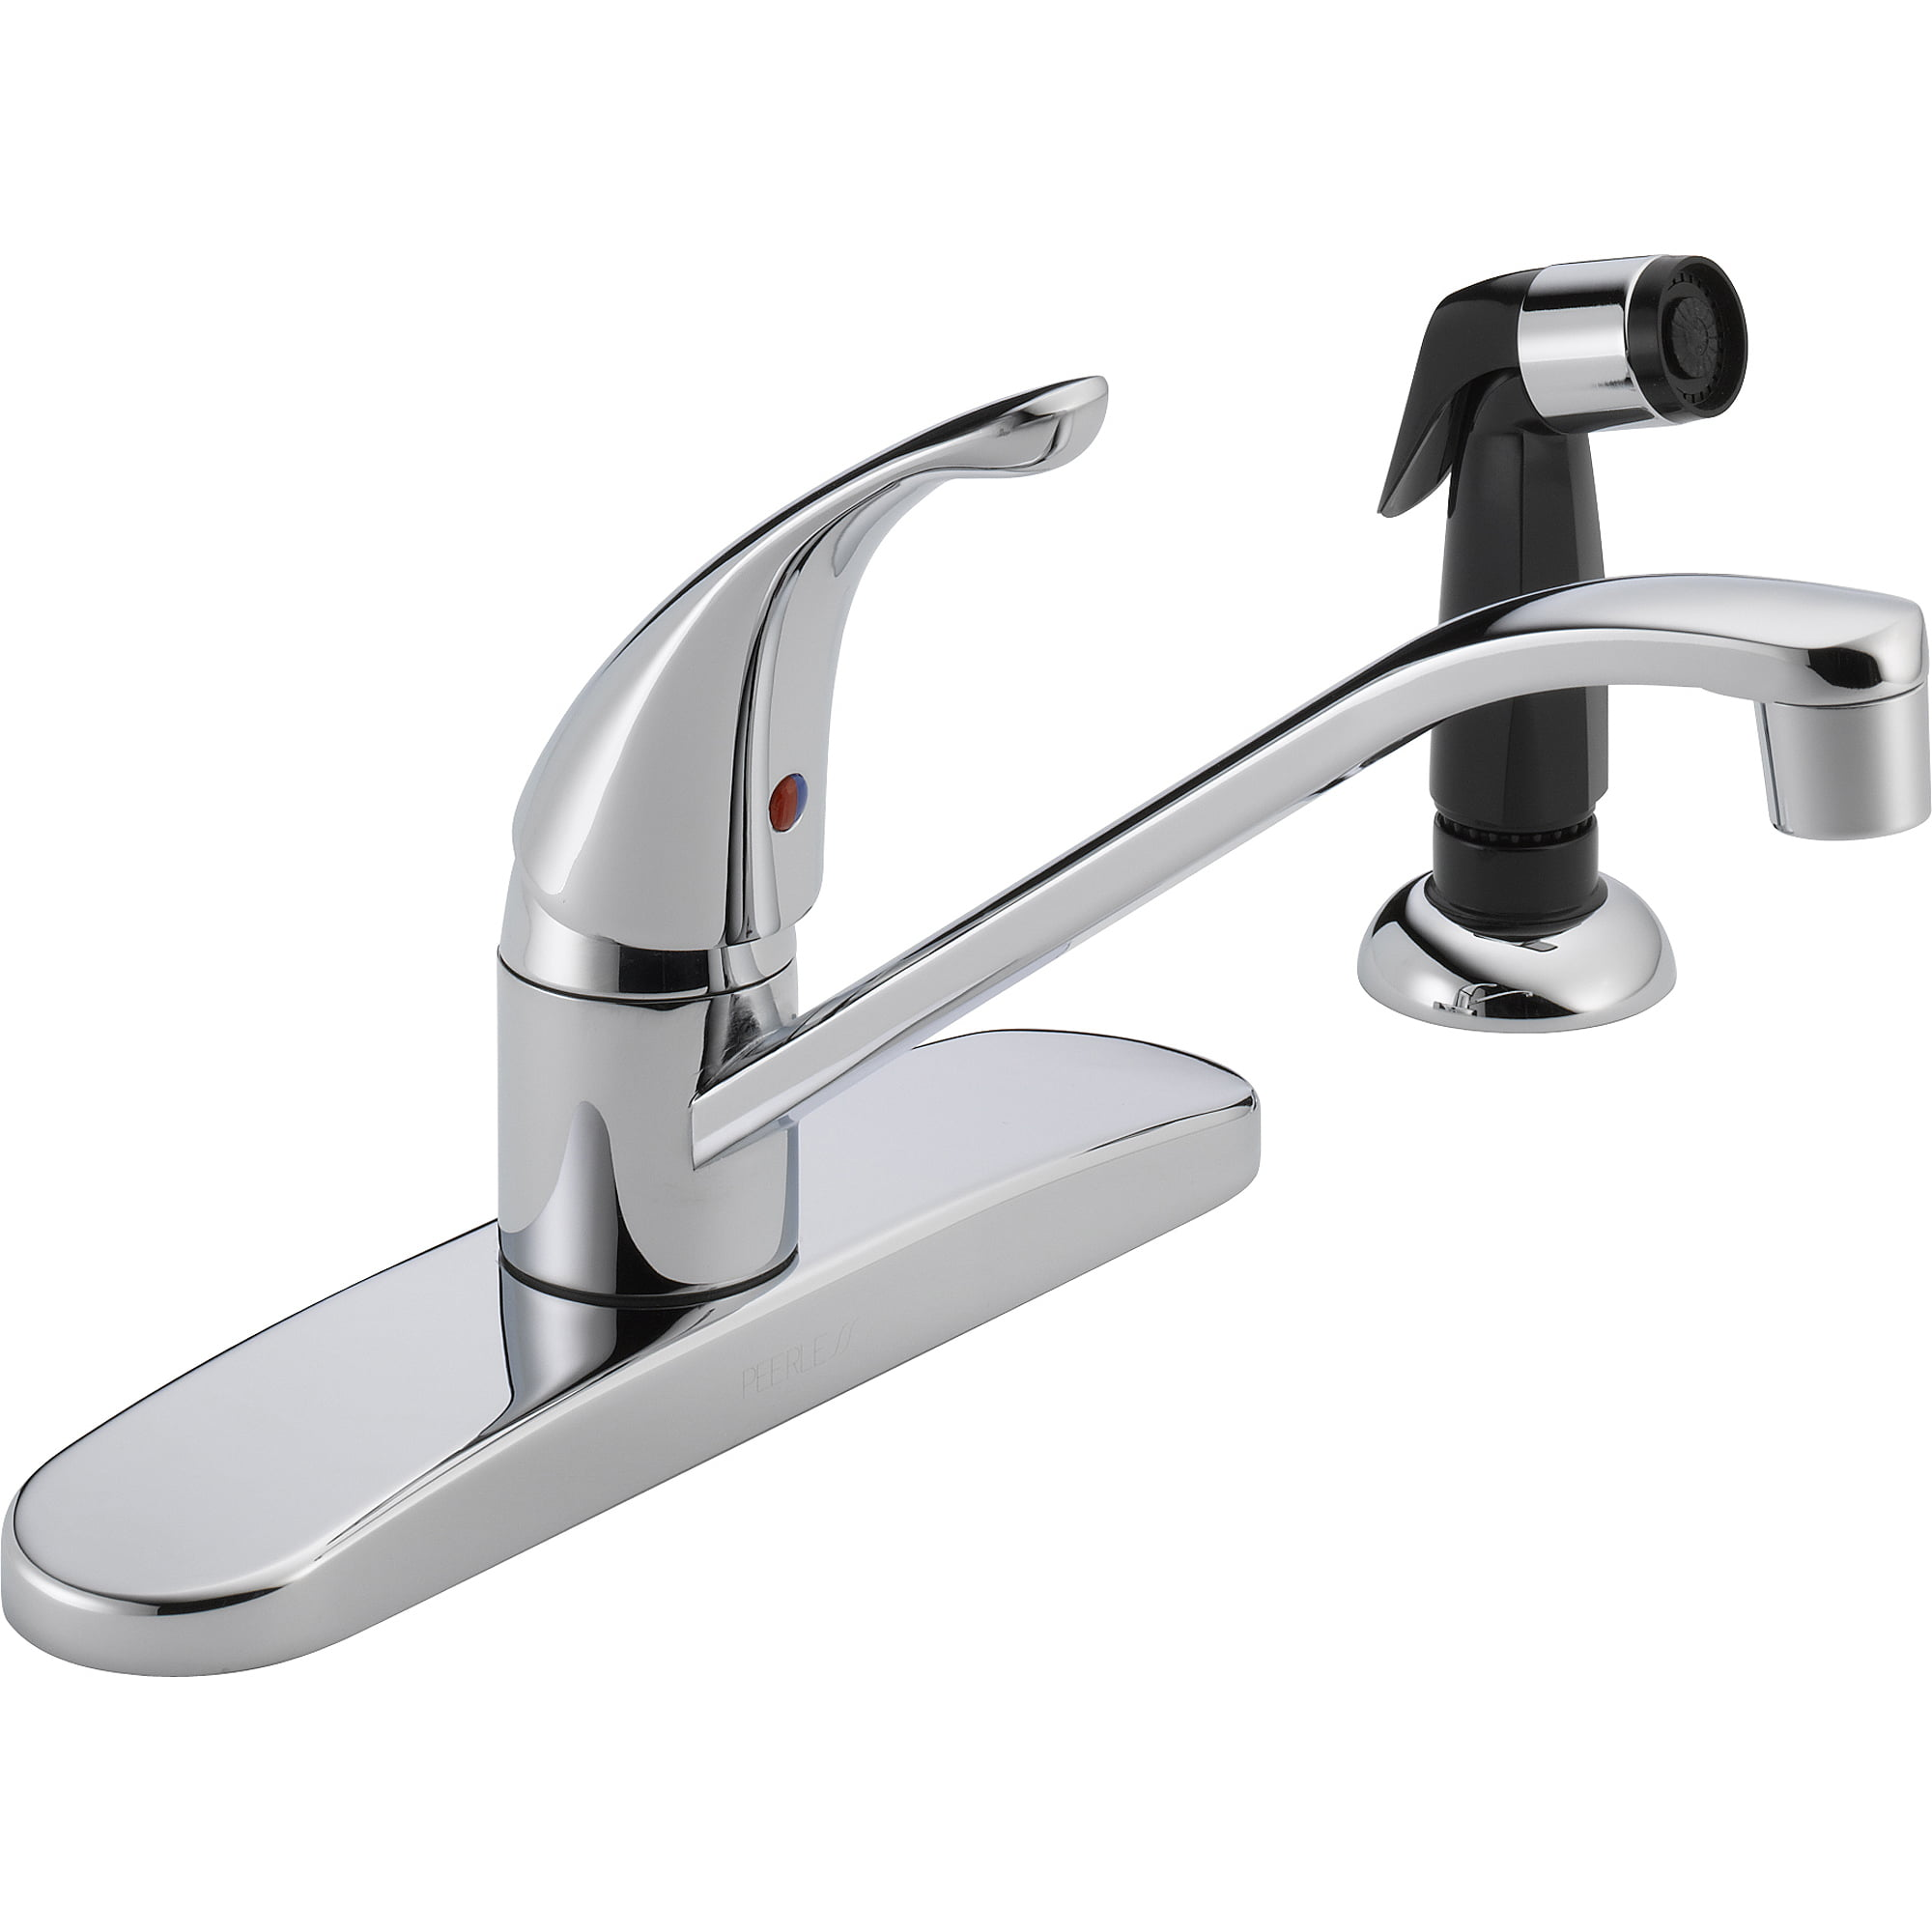 shop pd classic shower handle chrome at faucet com peerless delta lowes